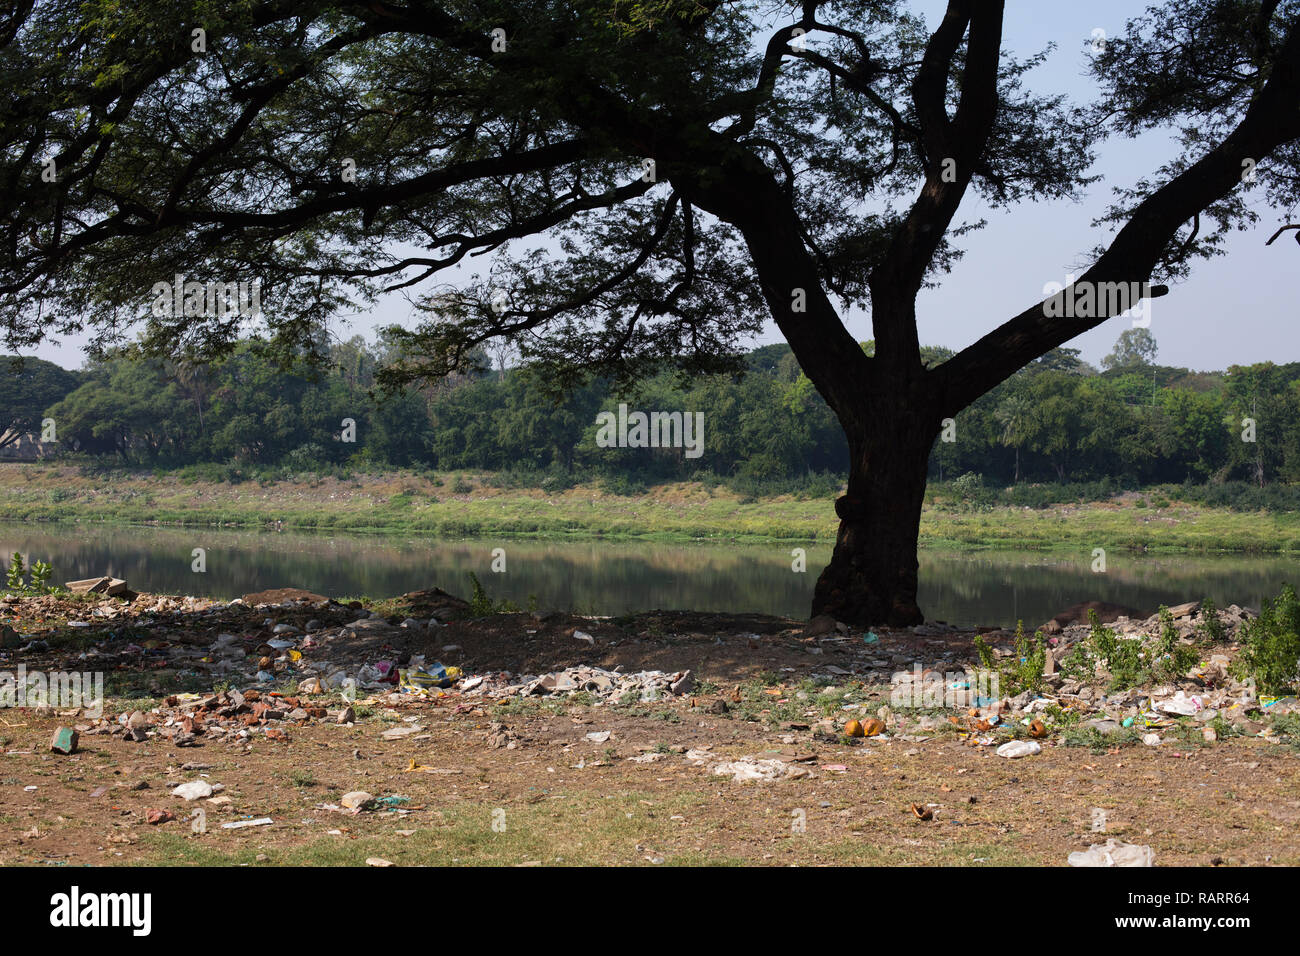 The riverside with trash in India. - Stock Image